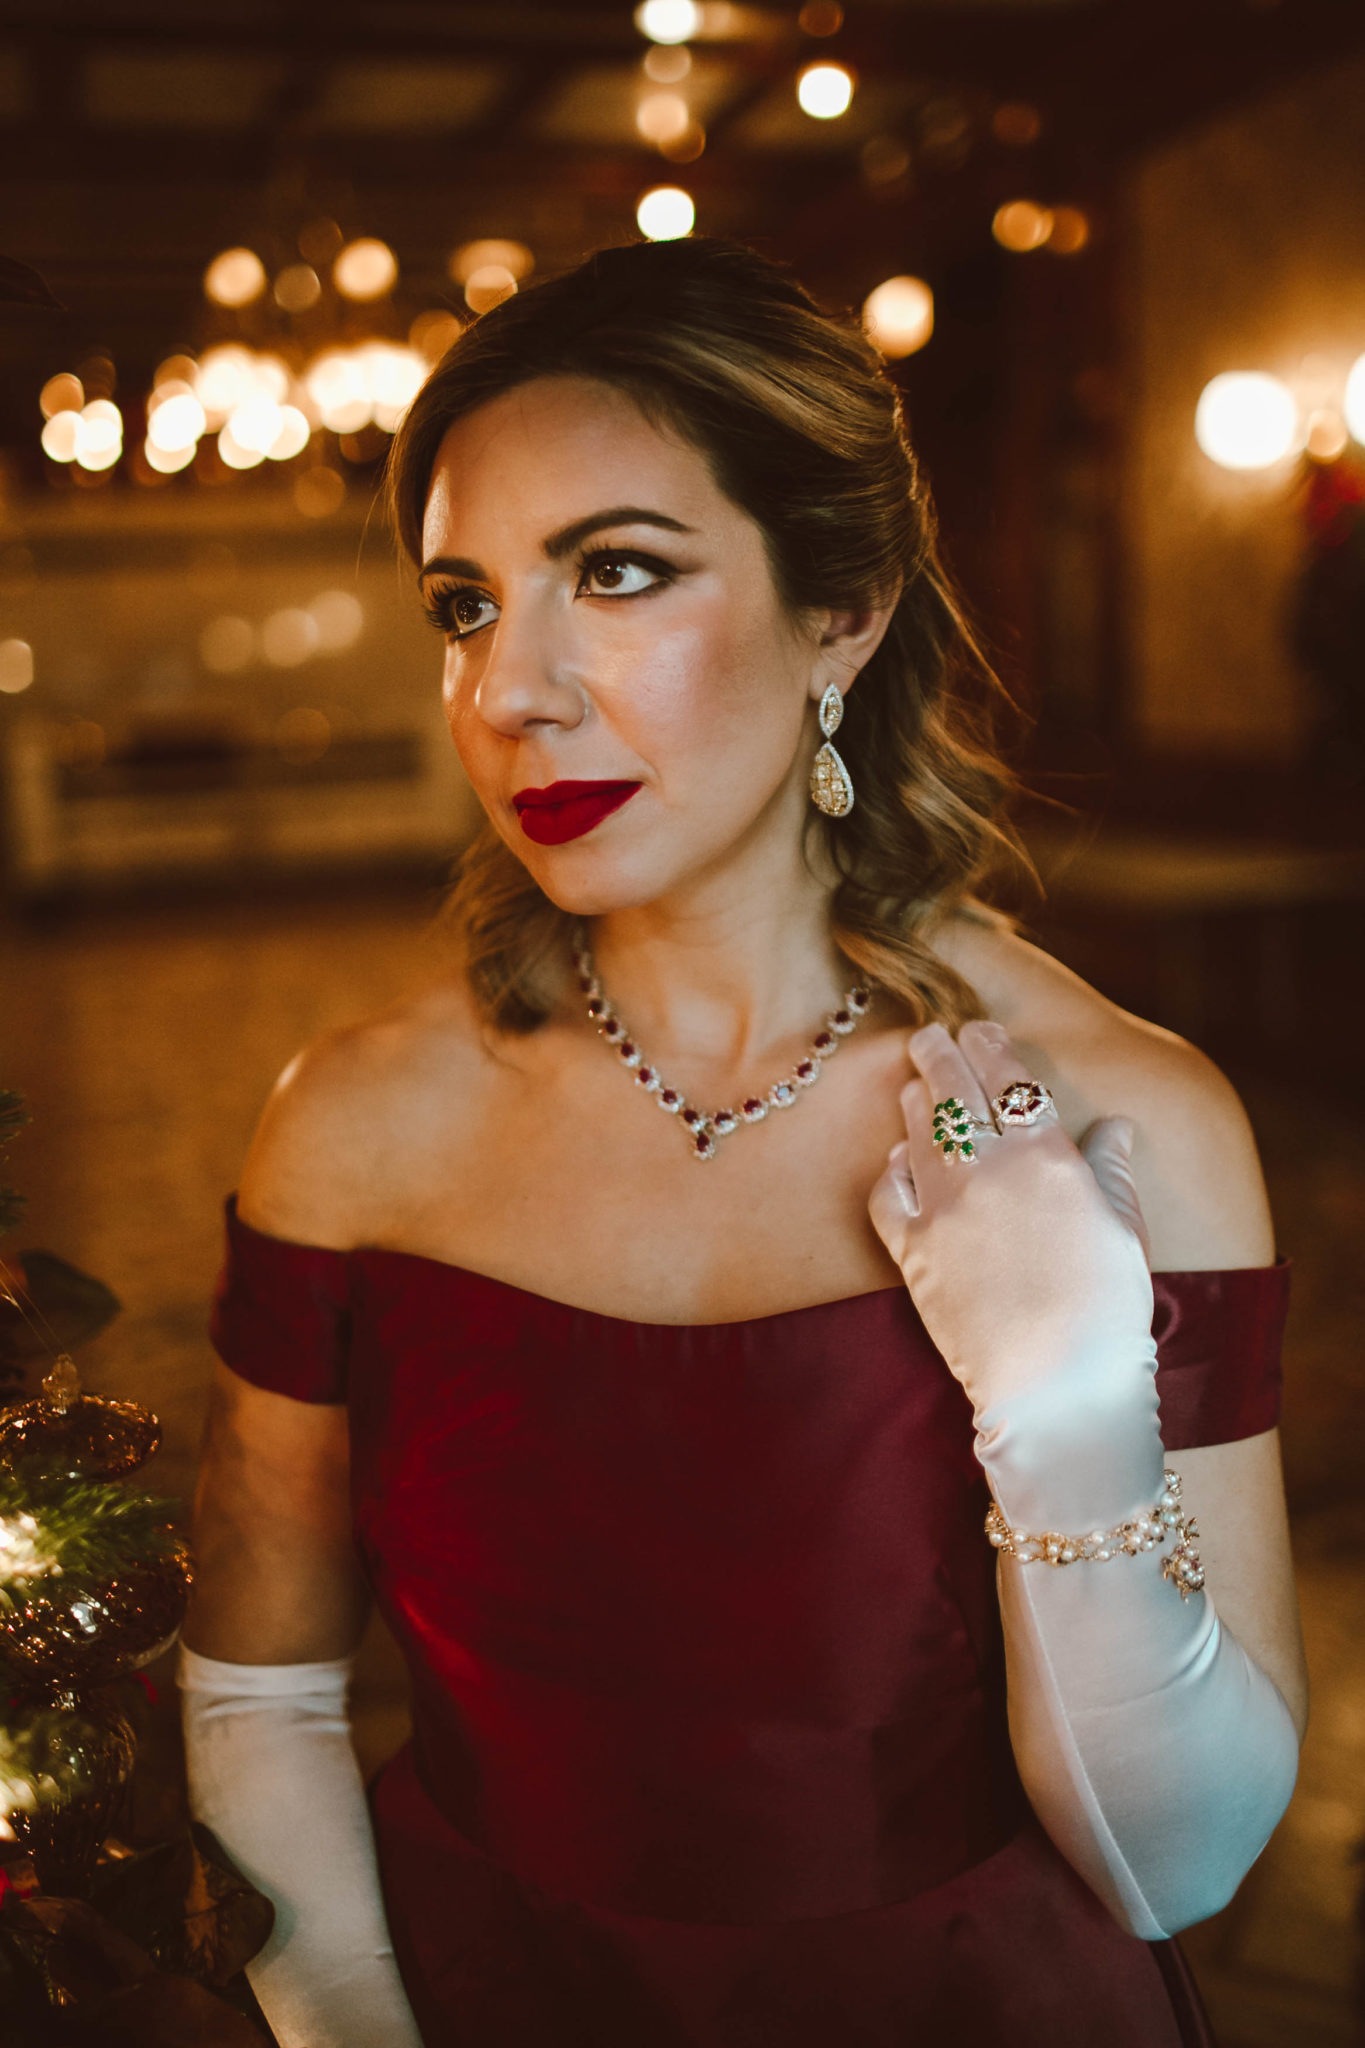 Glamorous holiday look featured by top Chicago fashion blog, Glass of Glam: image of a woman wearing a Monique Lhuillier gown, a Gigi New York clutch, glitter stiletto pumps, Amazon satin gloves